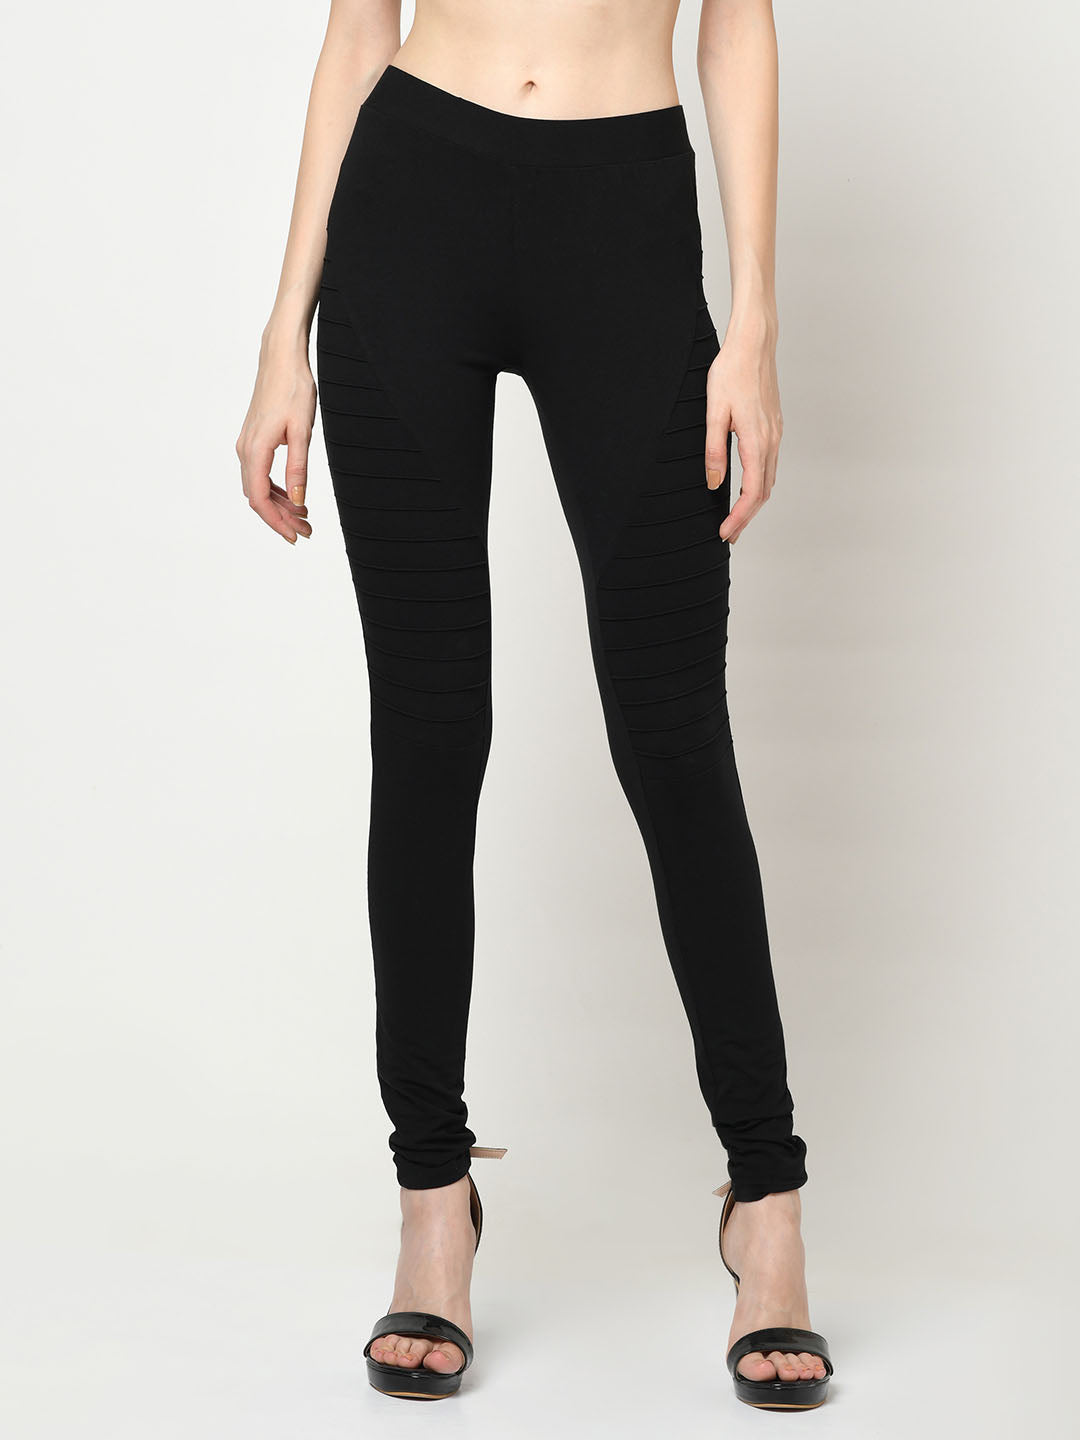 Black Jeggings With Lateral Ridges